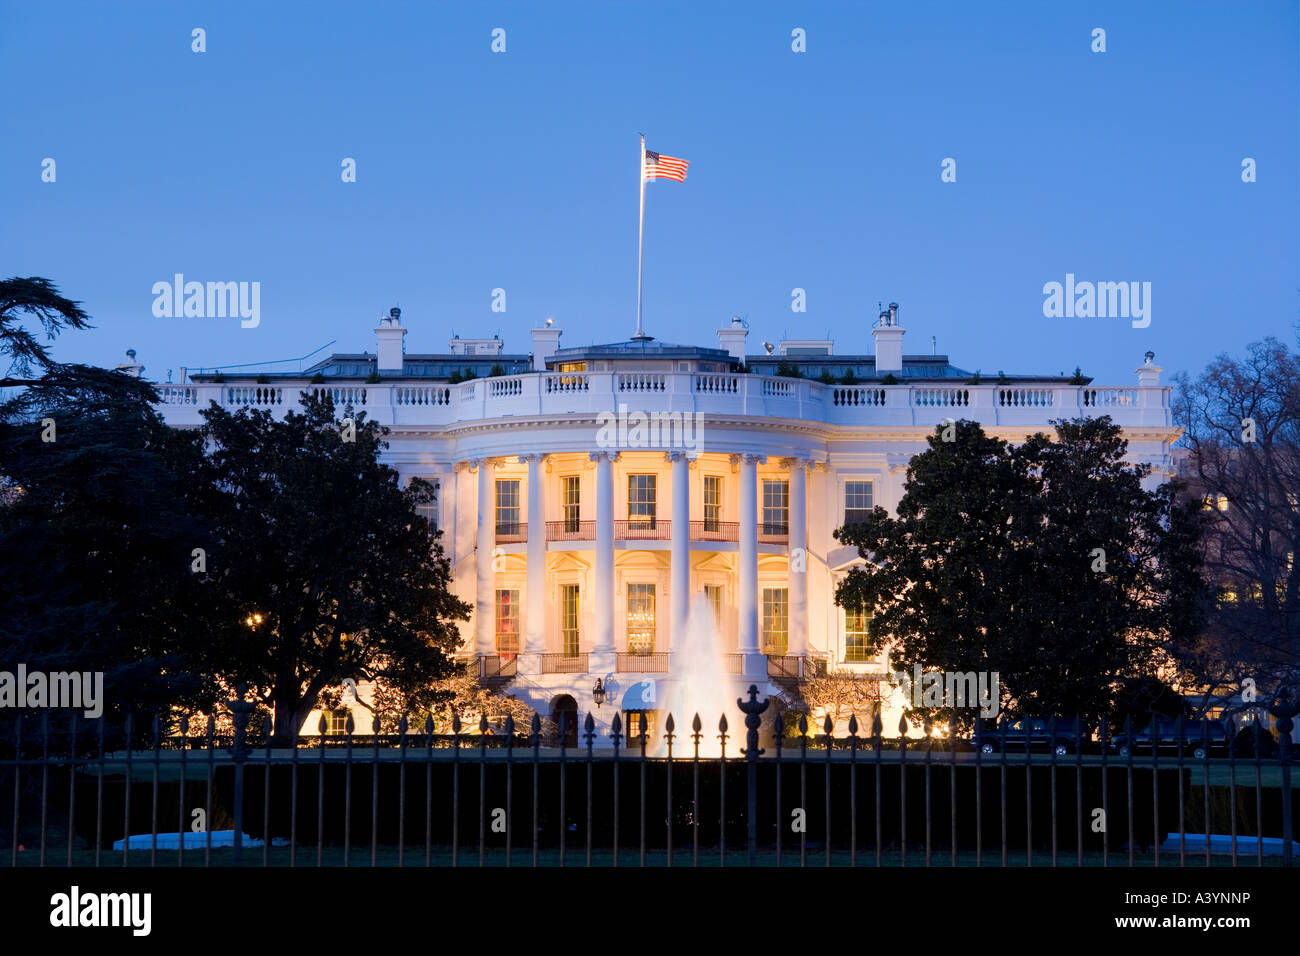 Washington White House Washington DC with the Truman Balcony at night. South side view over the fence. - Stock Image